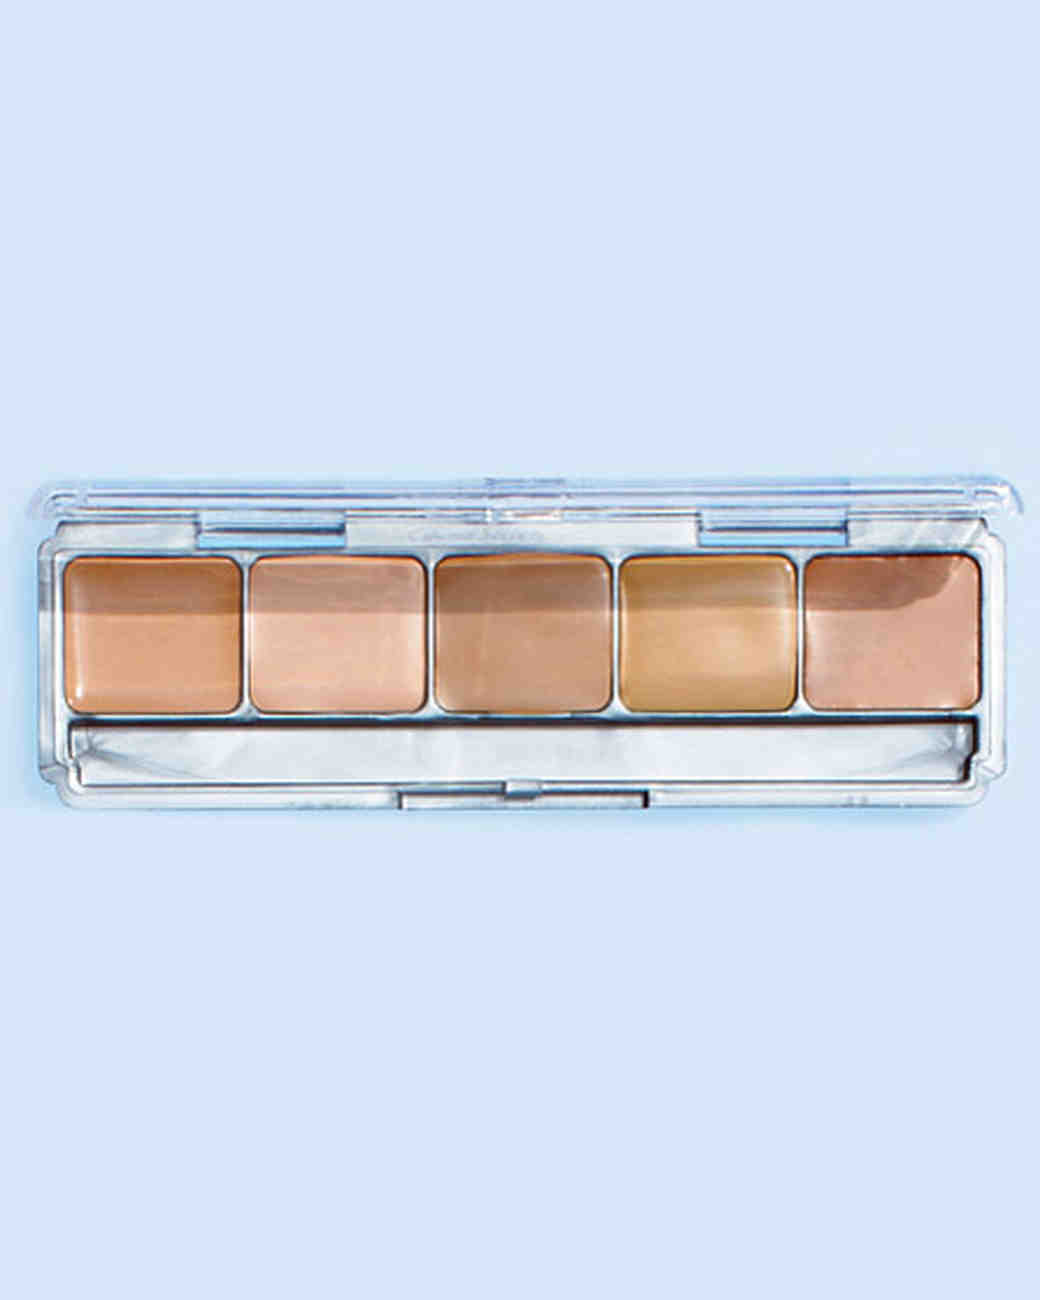 foundation-palette-cosmetic-mwd107916.jpg